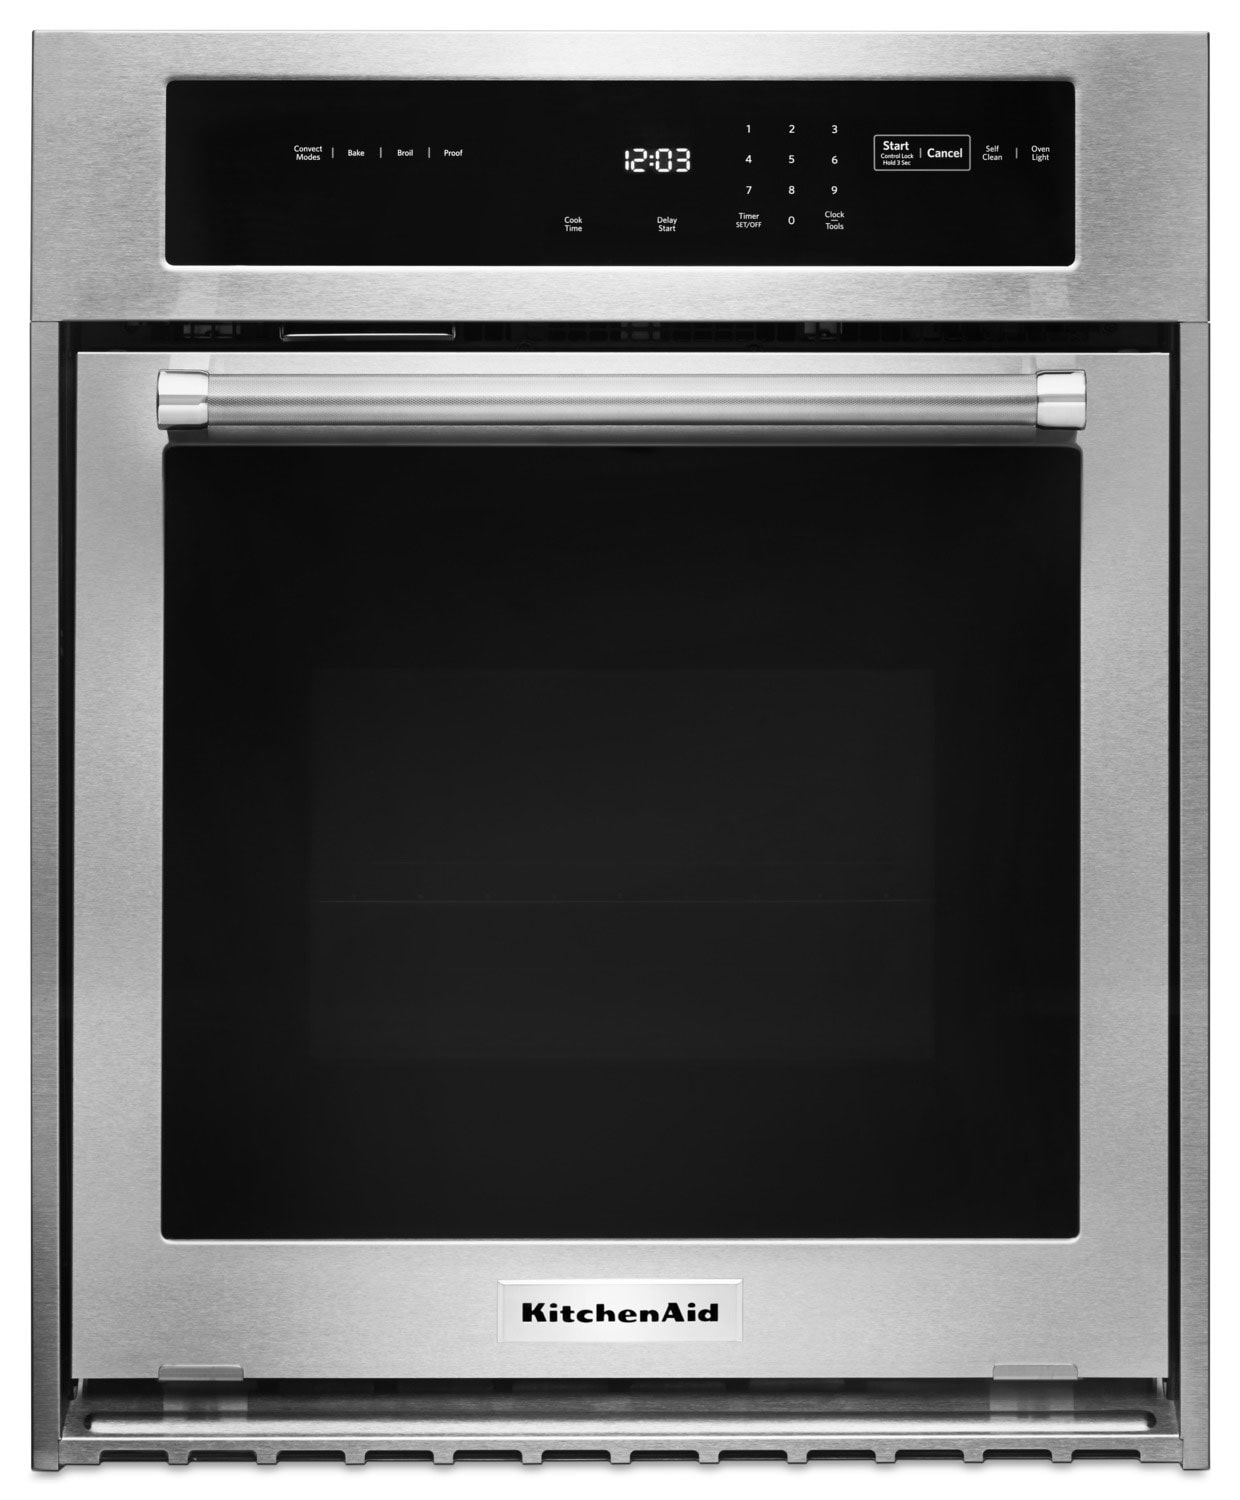 Cuisinières - Four mural simple KitchenAid de 3,1 pi3 - KOSC504ESS